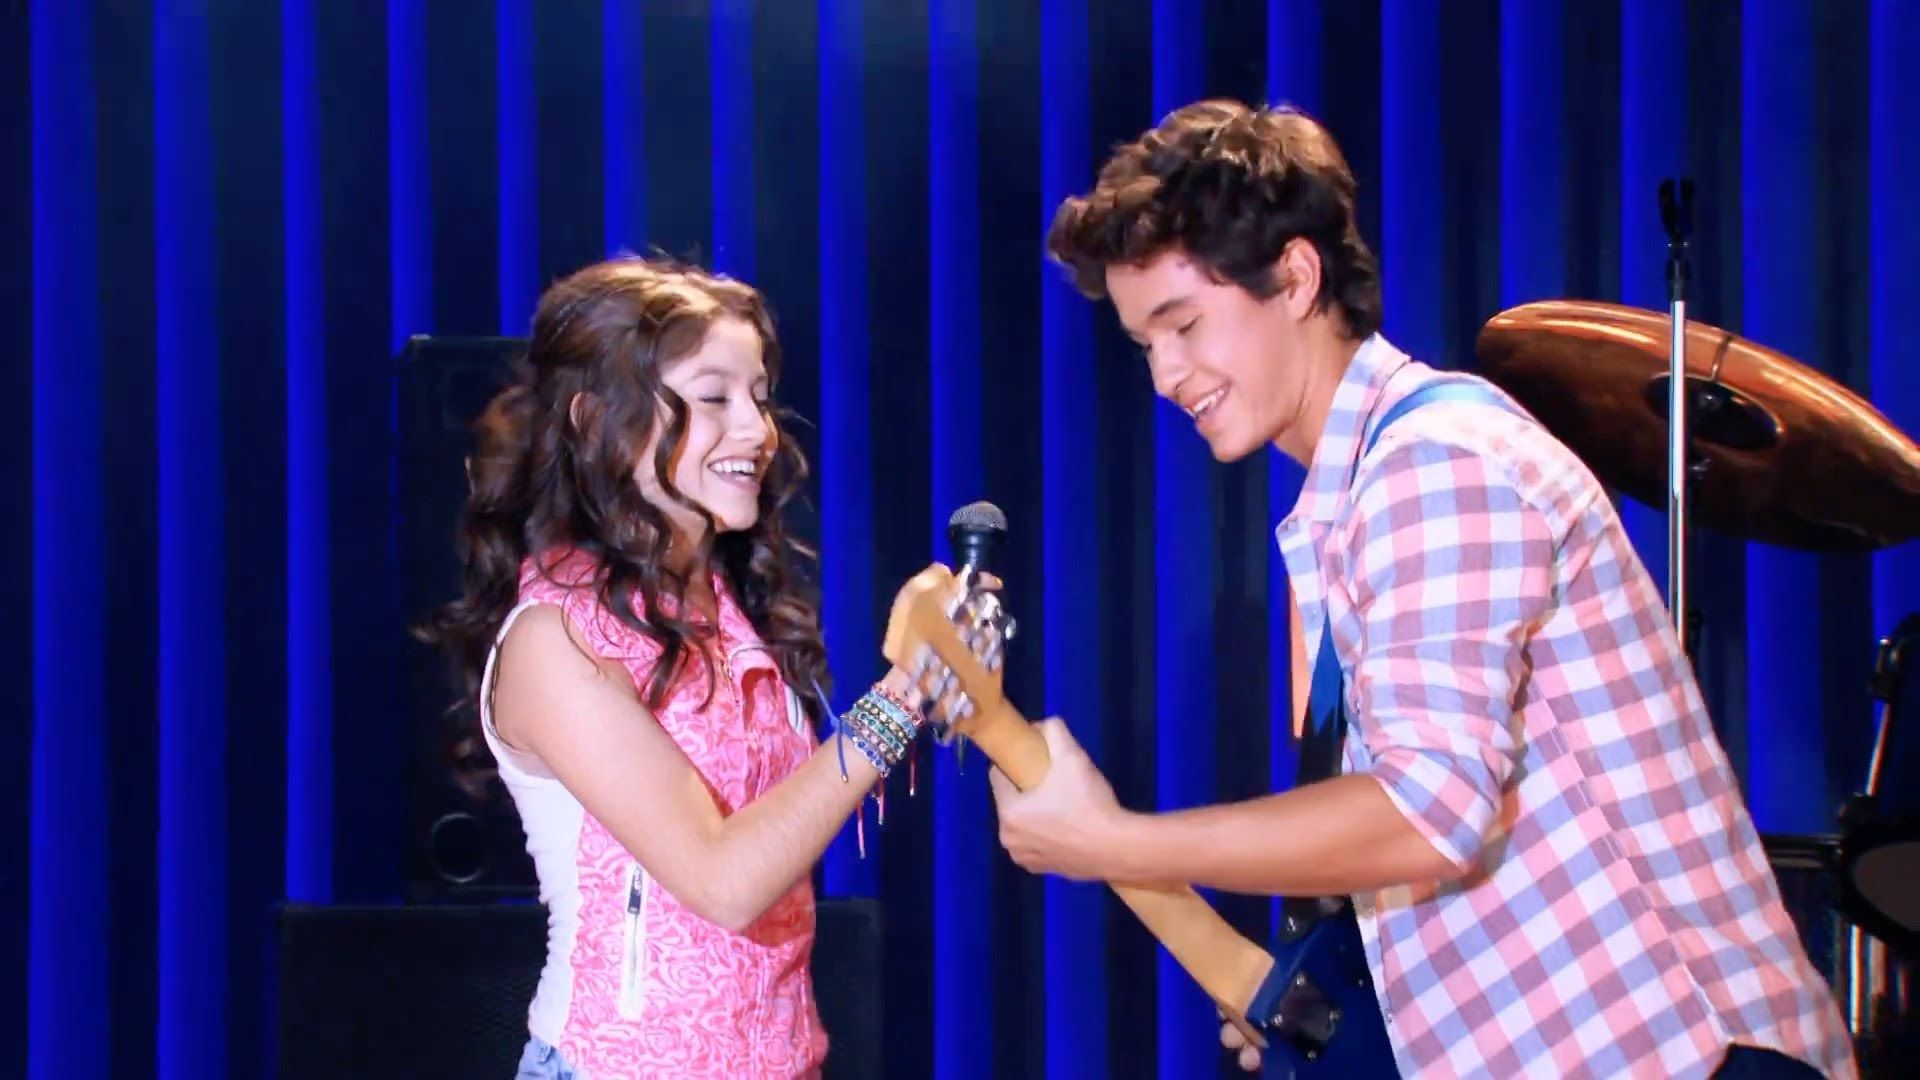 Soy Luna - Alas (Video Oficial) | musicals | Pinterest